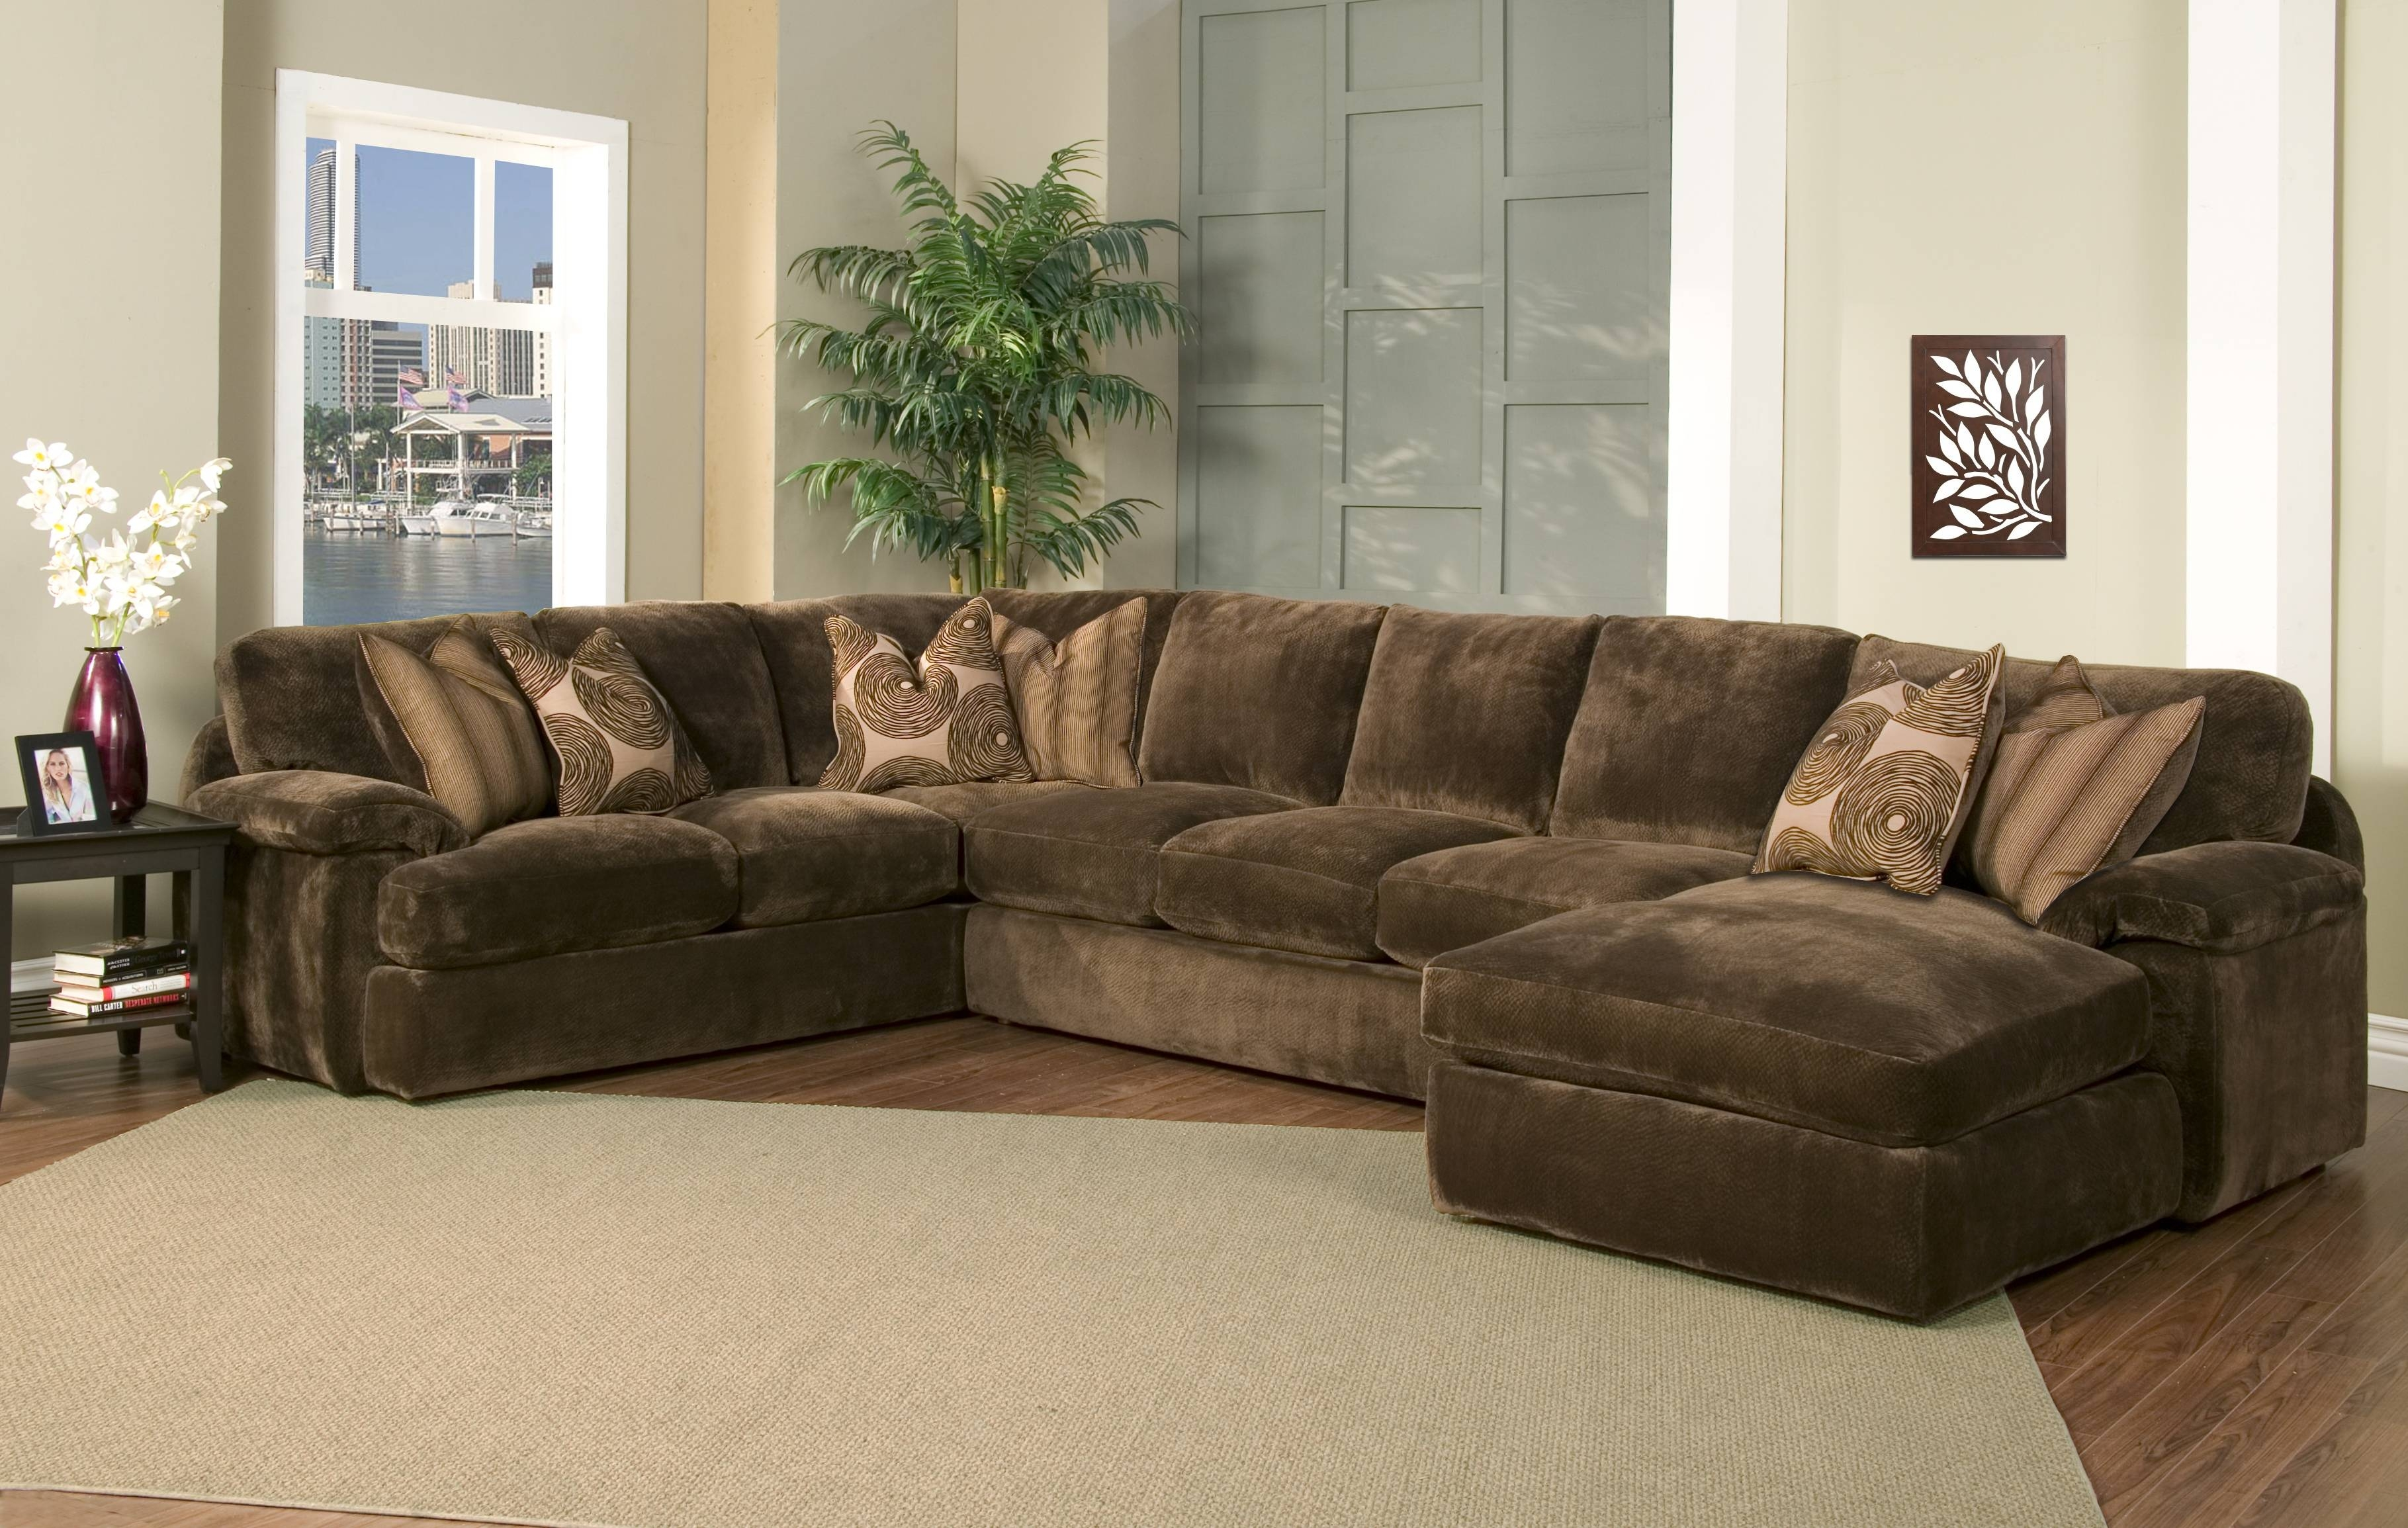 12 Best Ideas Of Down Feather Sectional Sofa inside Down Feather Sectional Sofa (Image 1 of 30)